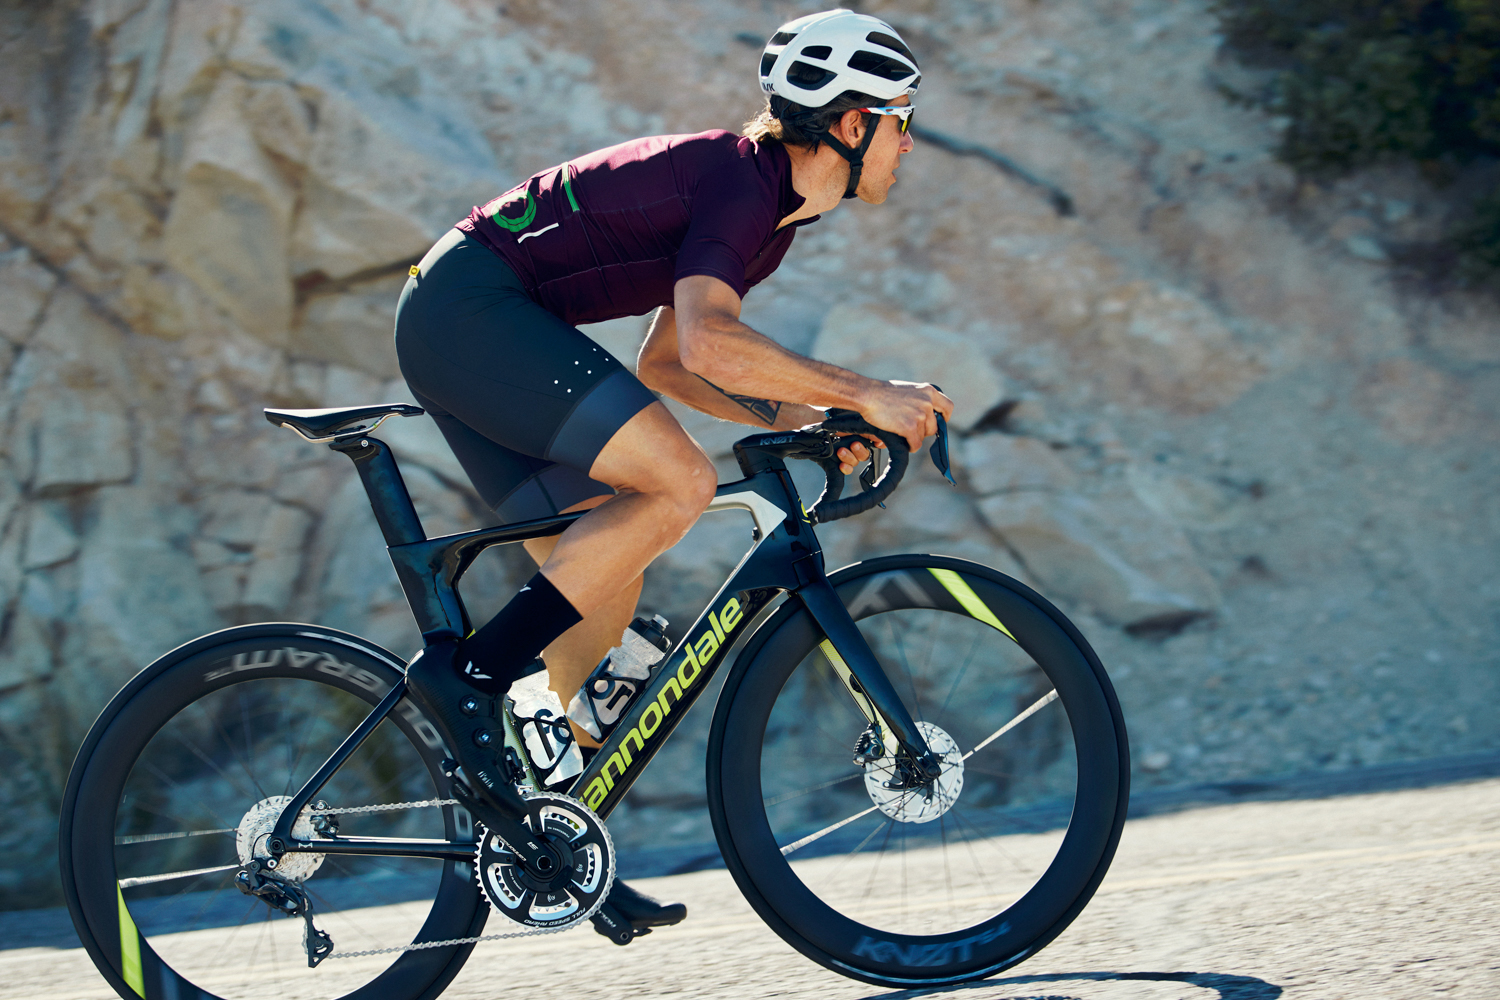 Cannondale Claims Fastest Road Bike That S Uci Legal